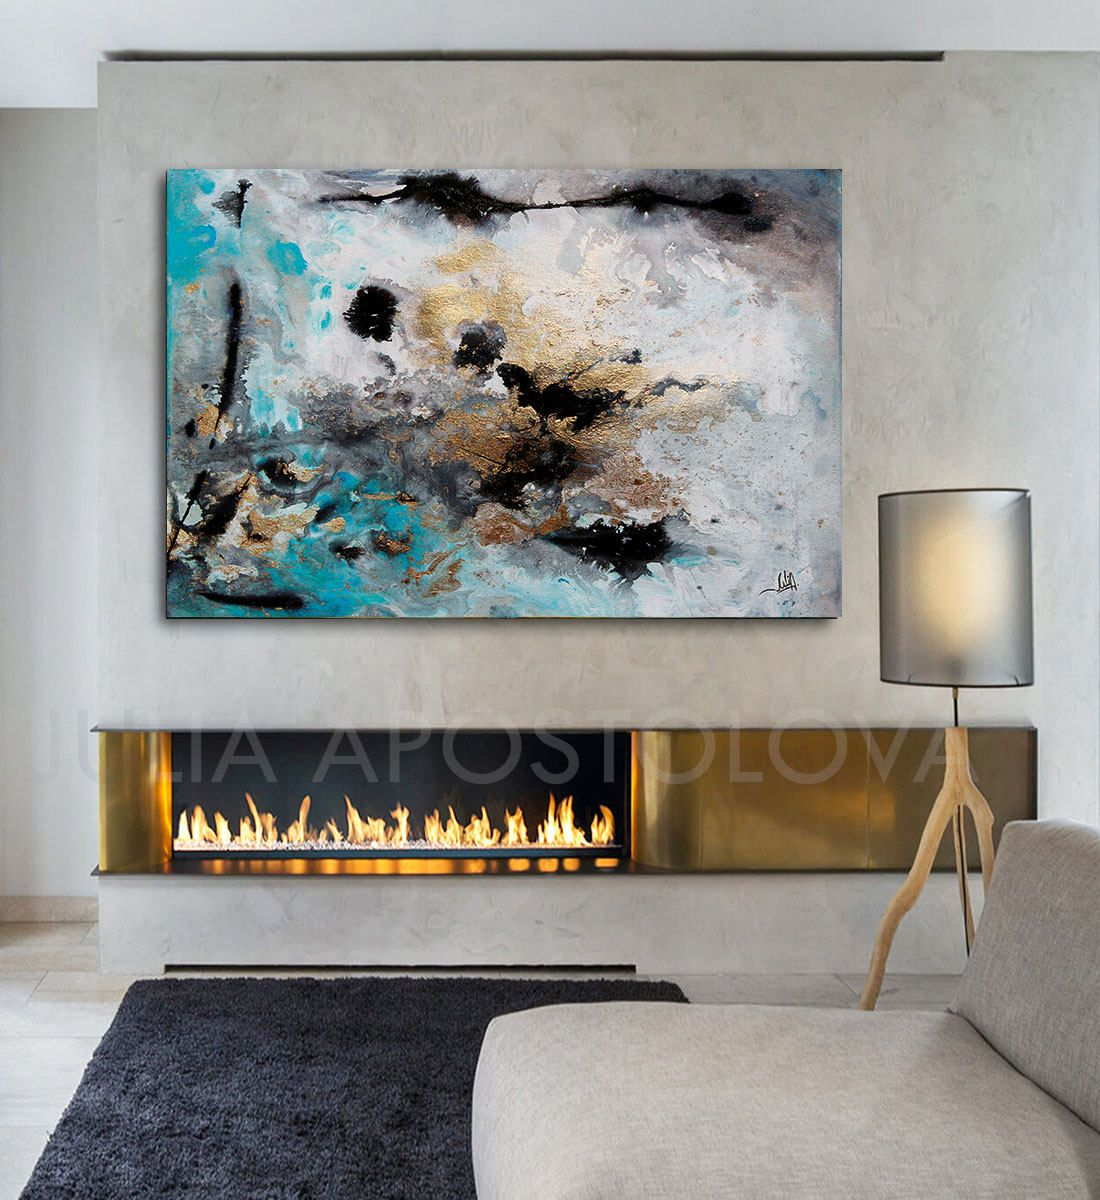 Attractive 48inch, Turquoise Gold Black, Abstract Print, Large Wall Art, Abstract Art  Canvas, Gray And Turquoise, Watercolor Painting, Julia Apostolova